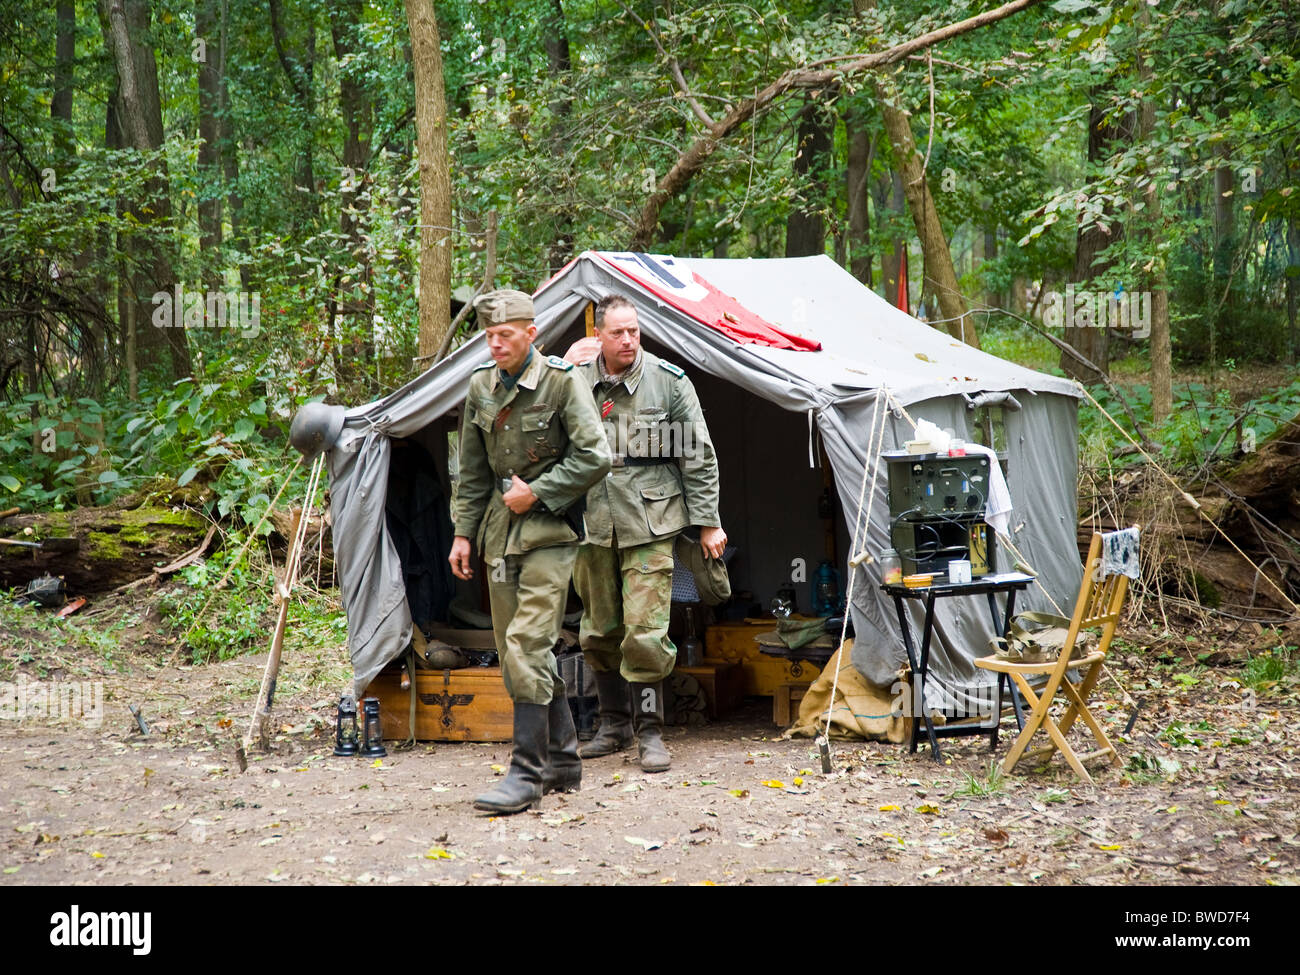 German Army Soldiers World War Two Acting Tent Show